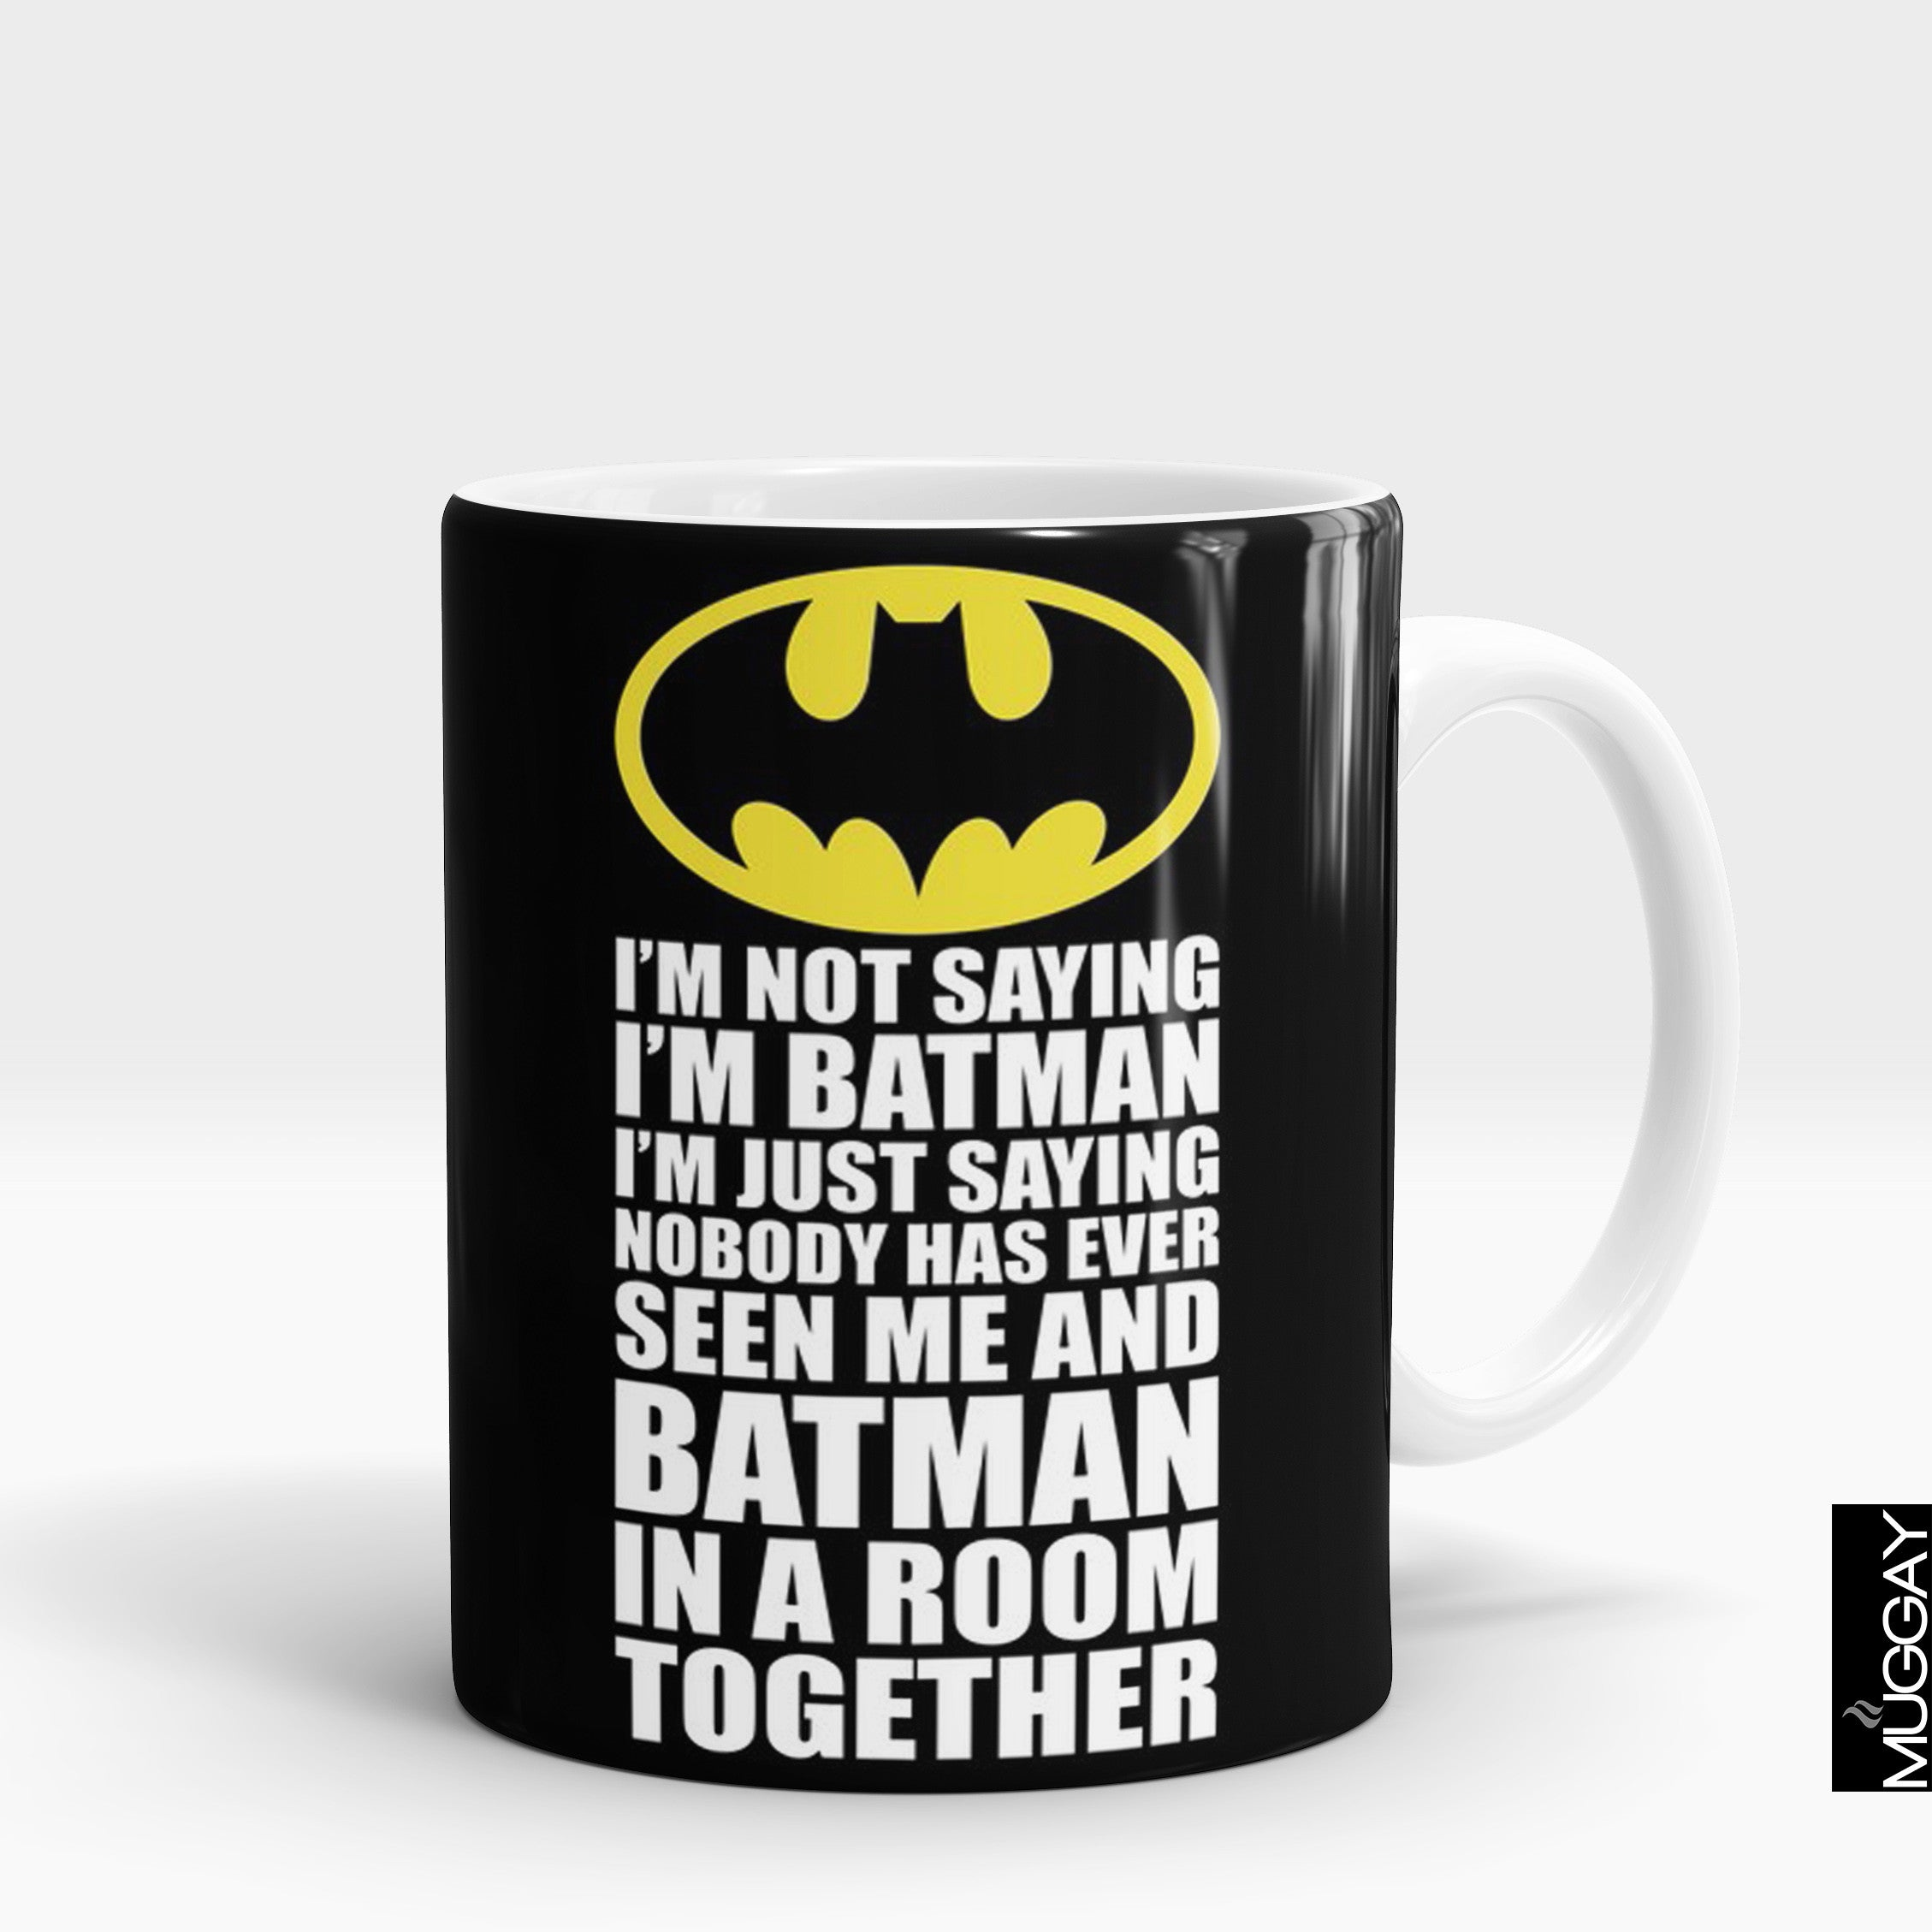 Super hero Mugs -9